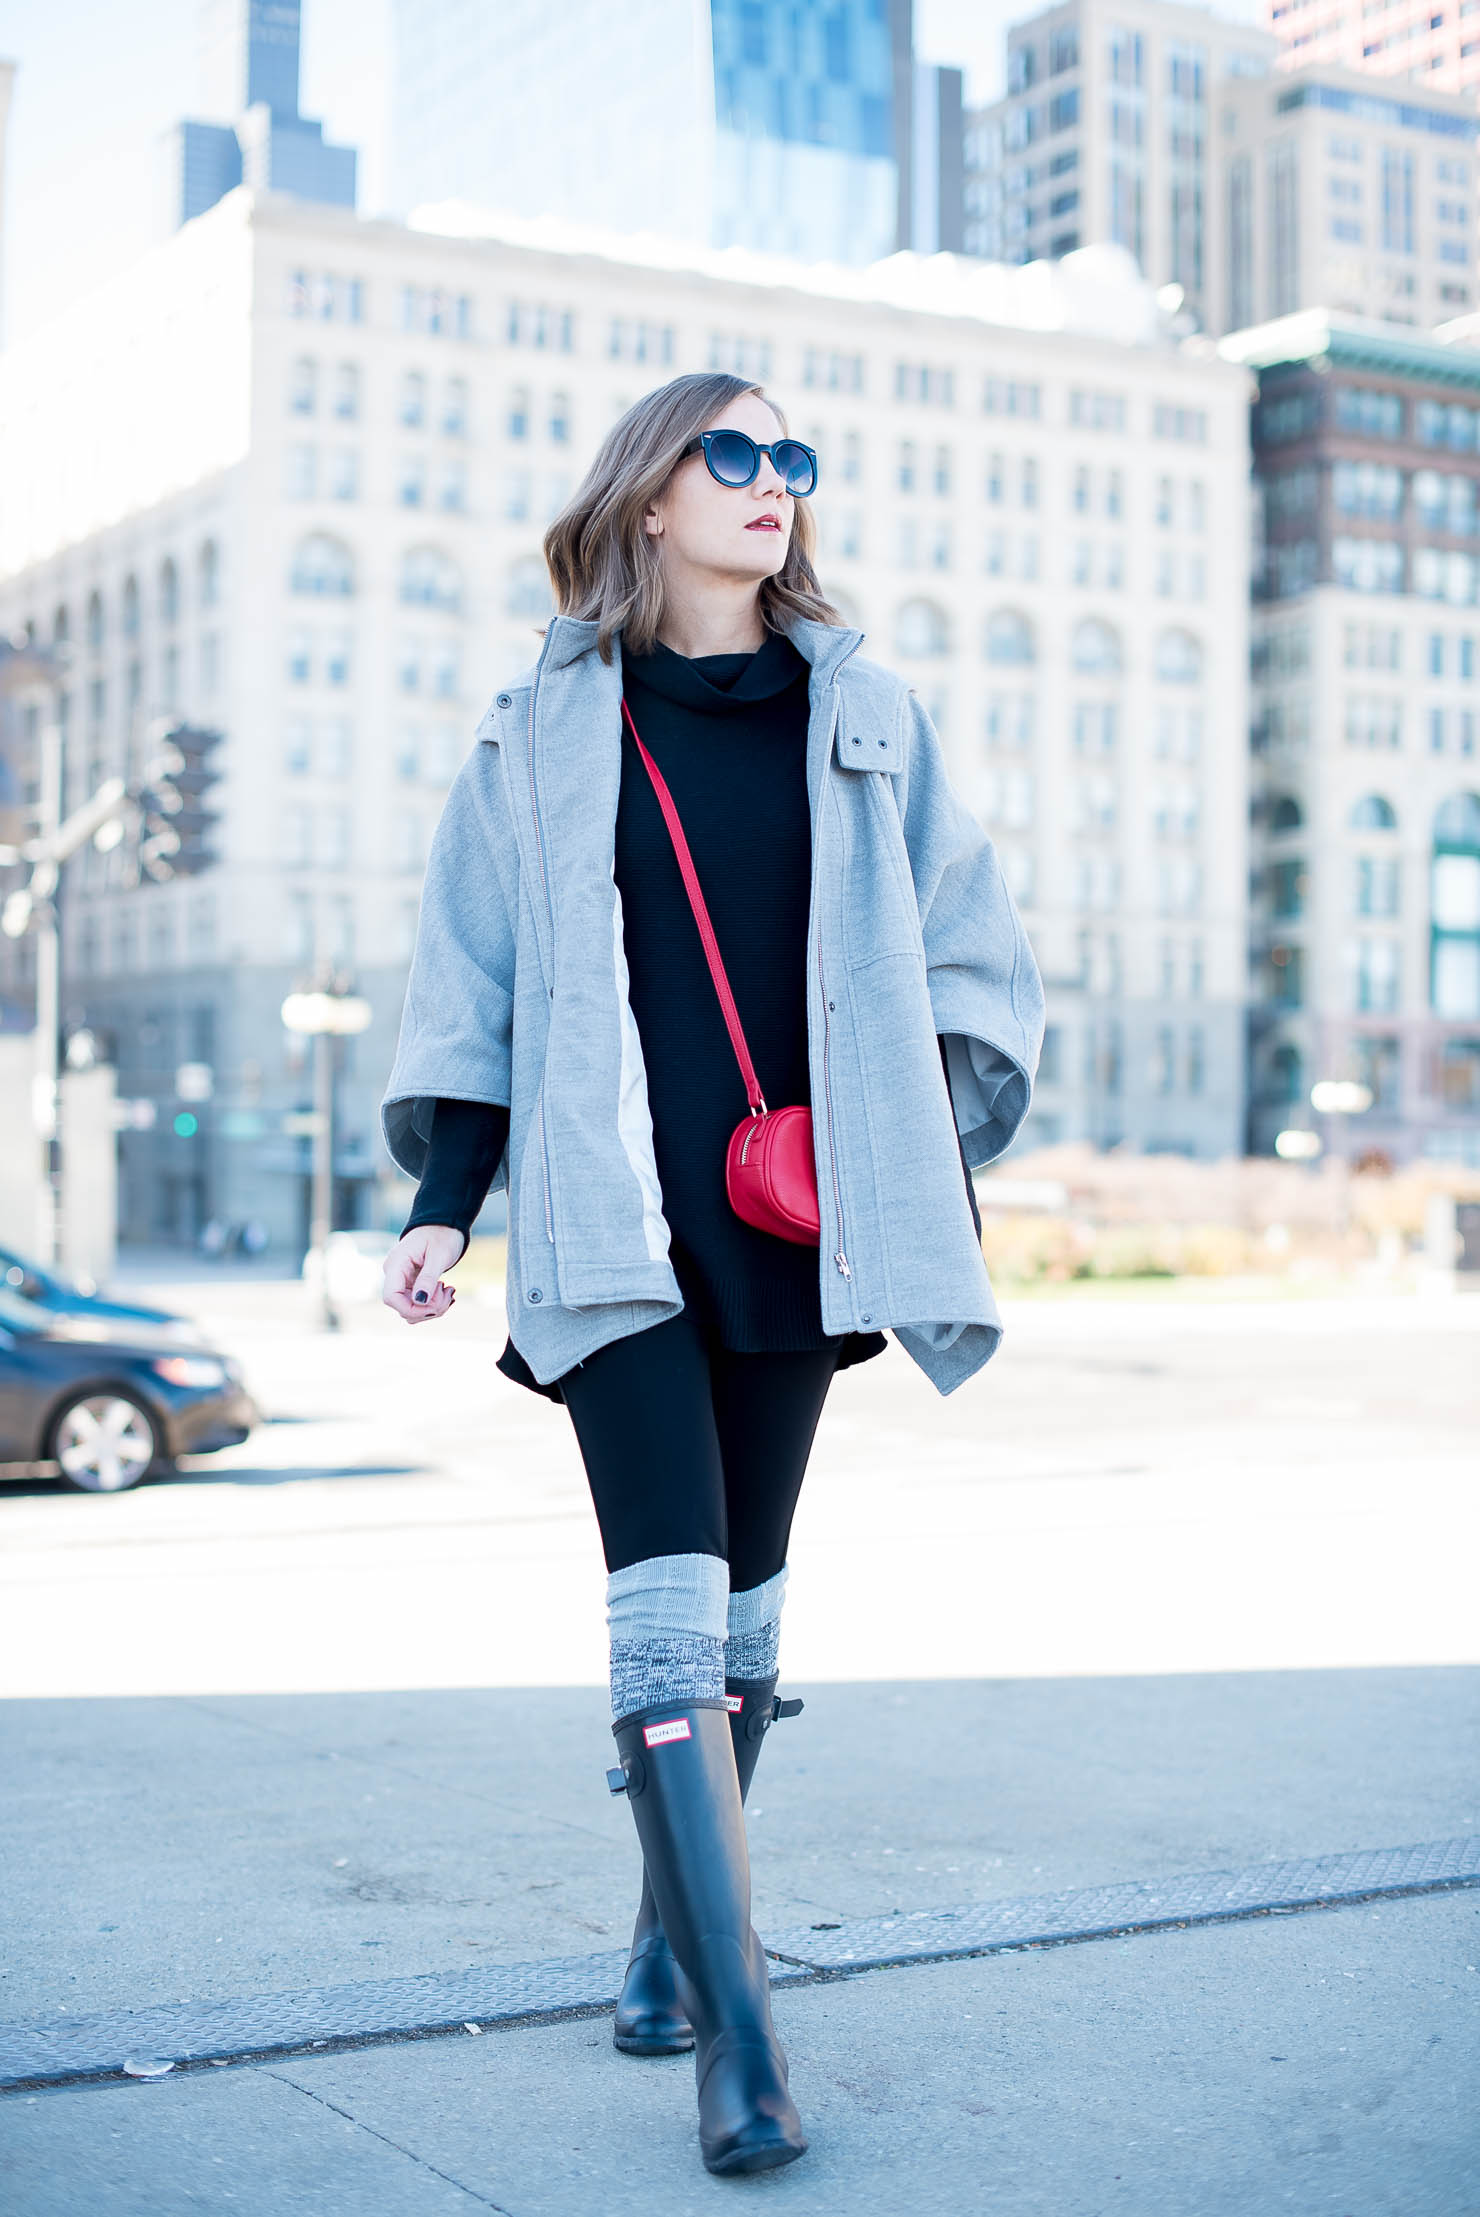 the-best-leggings-jean-and-lynn-karin-leggings-comfortable-and-chic-outfit-shopping-for-the-holidays-day-out-n-chicago-what-to-do-in-the-winter-in-chicago